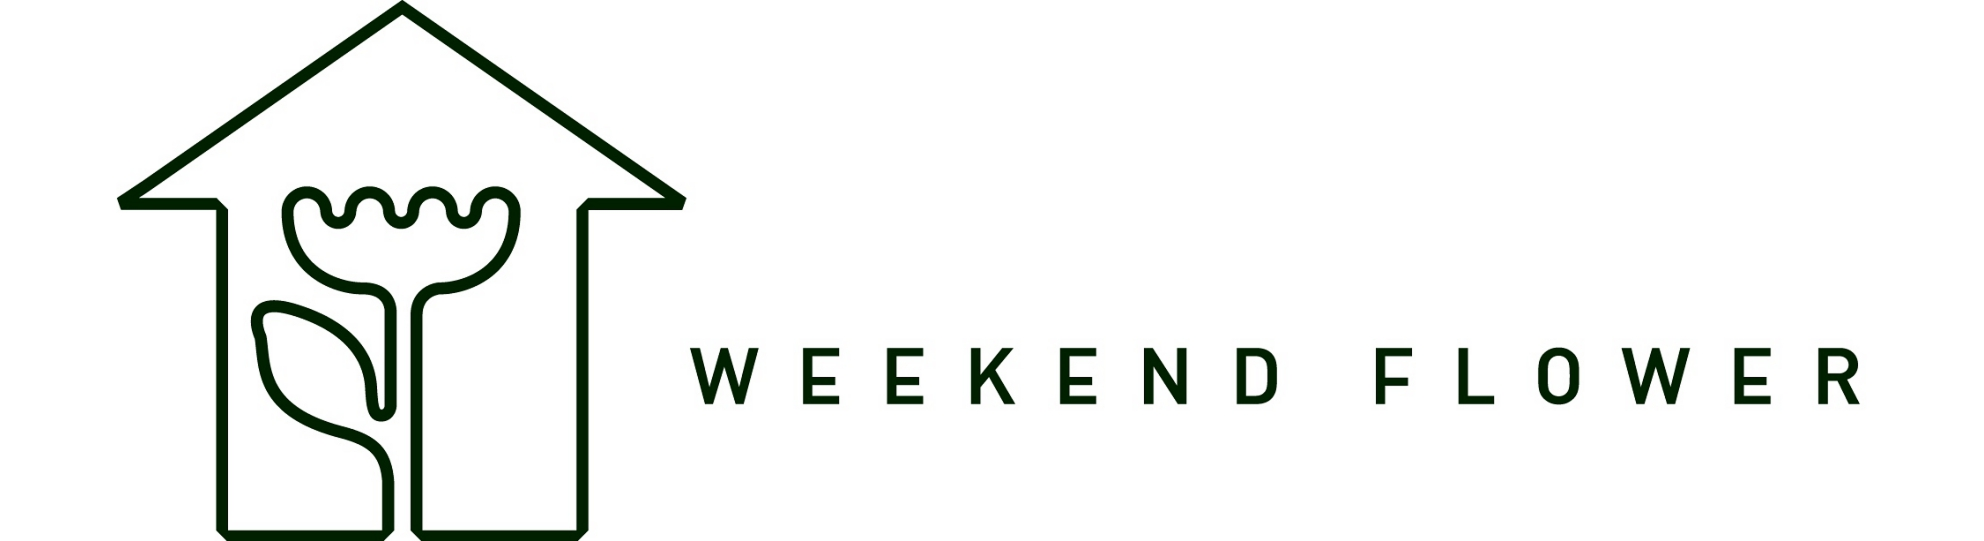 weekend_logo2395469c